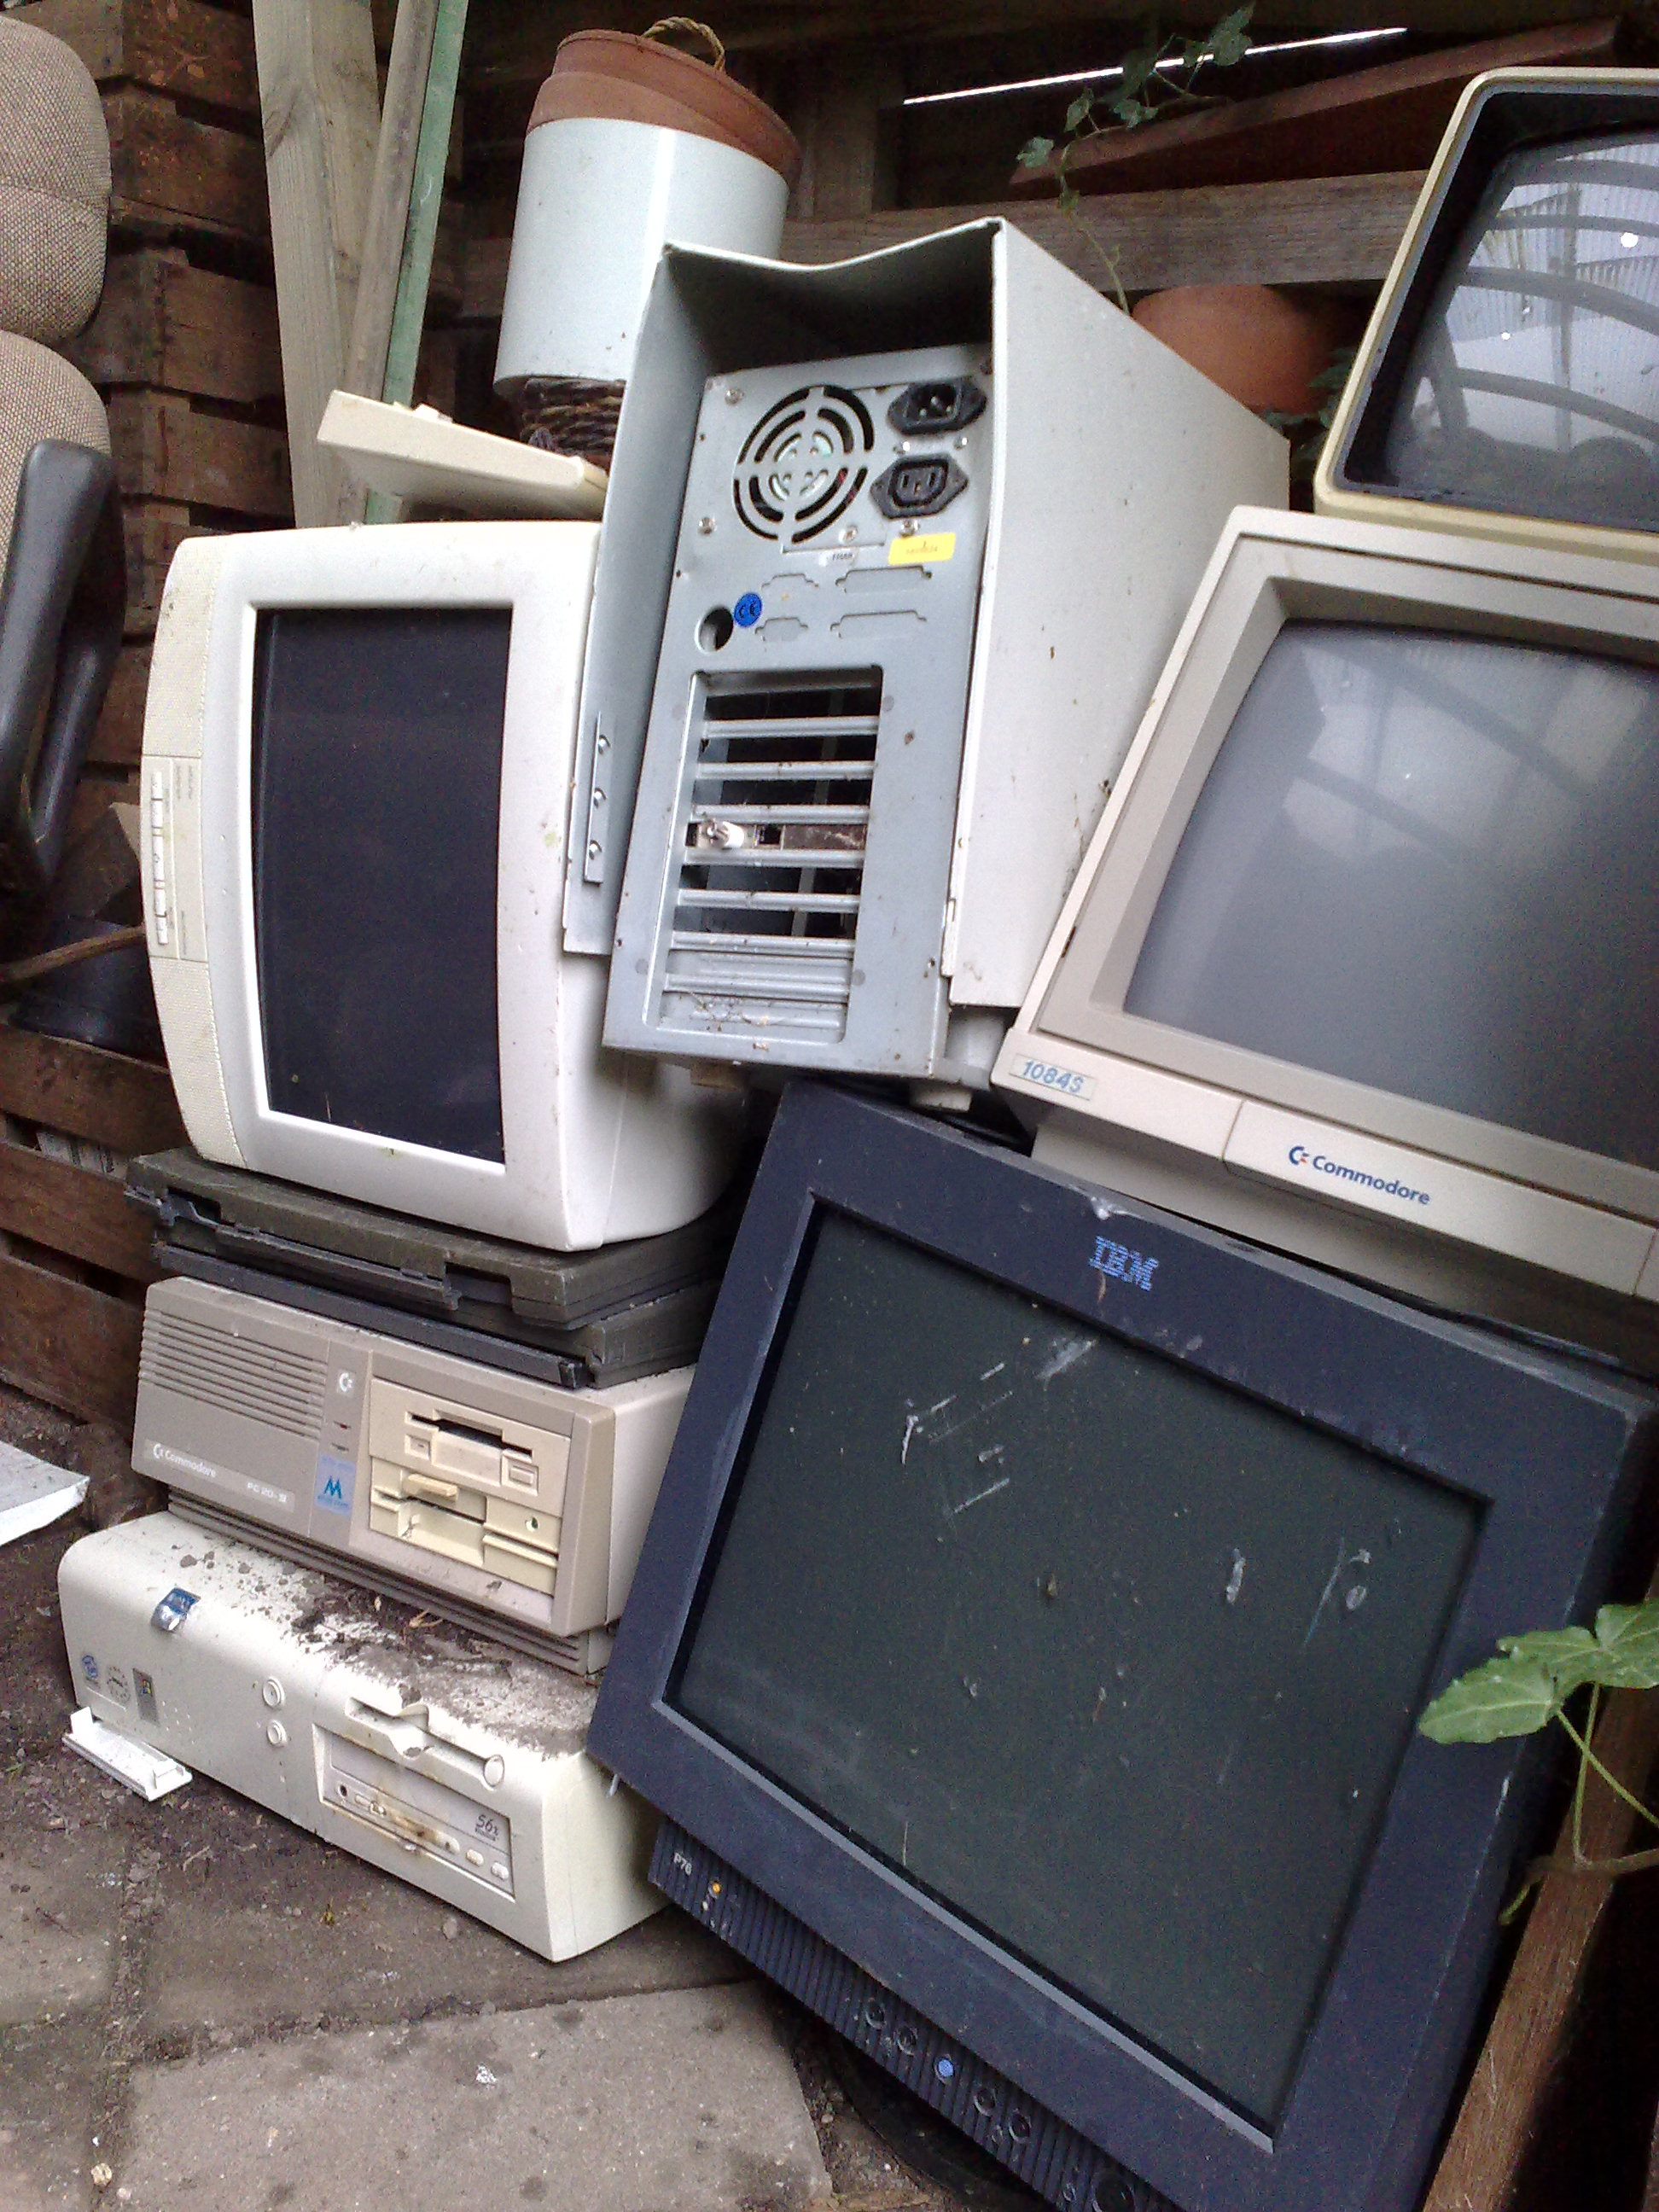 computers stacked on each other